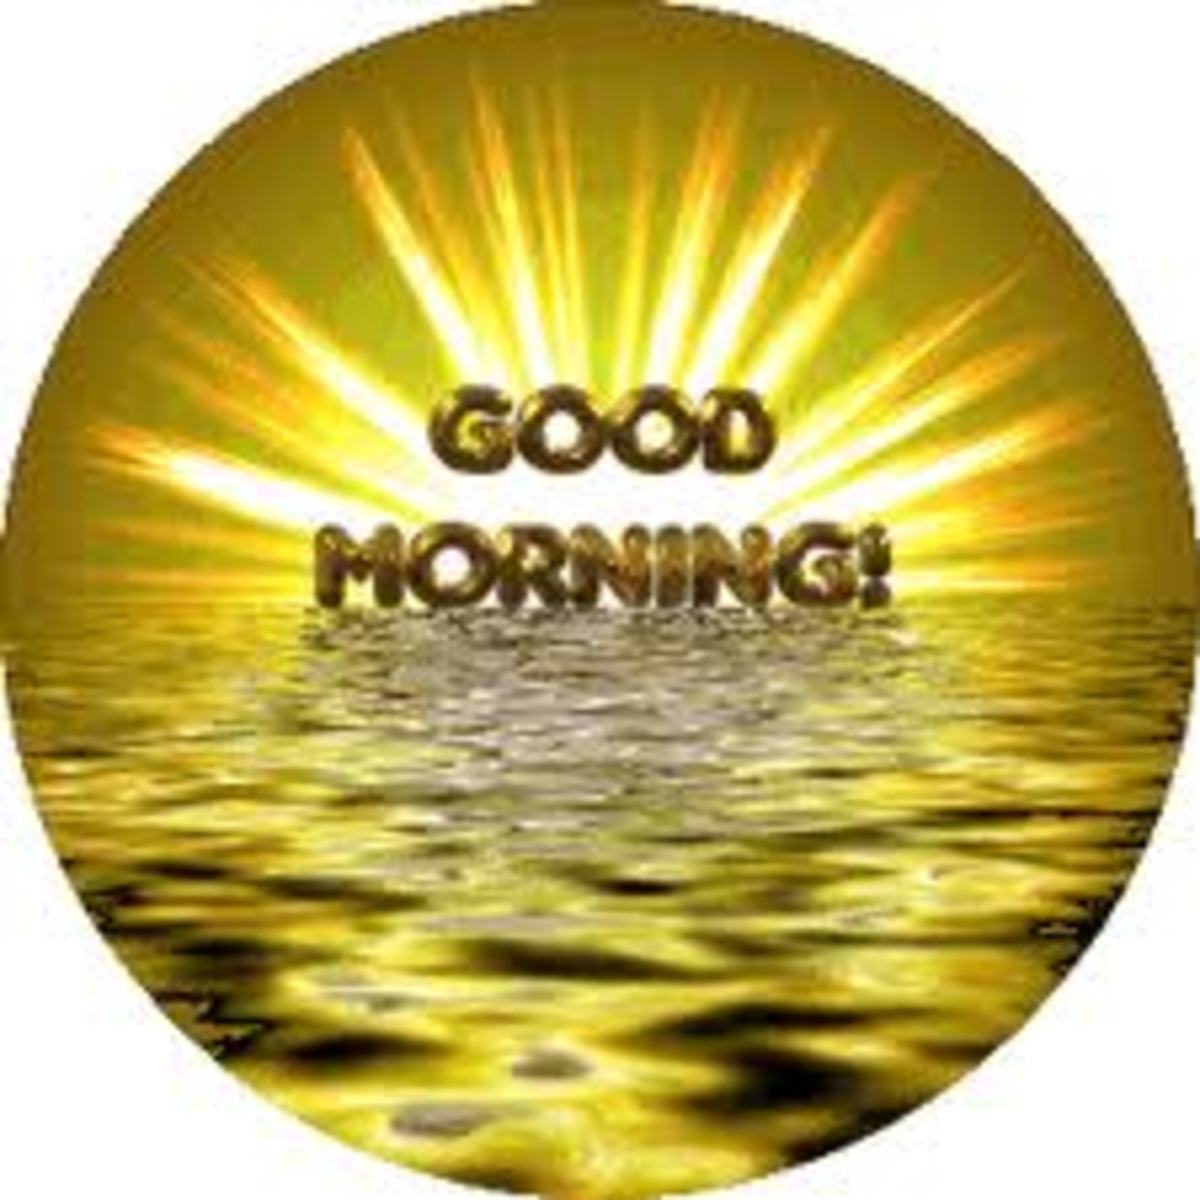 Good Morning Person